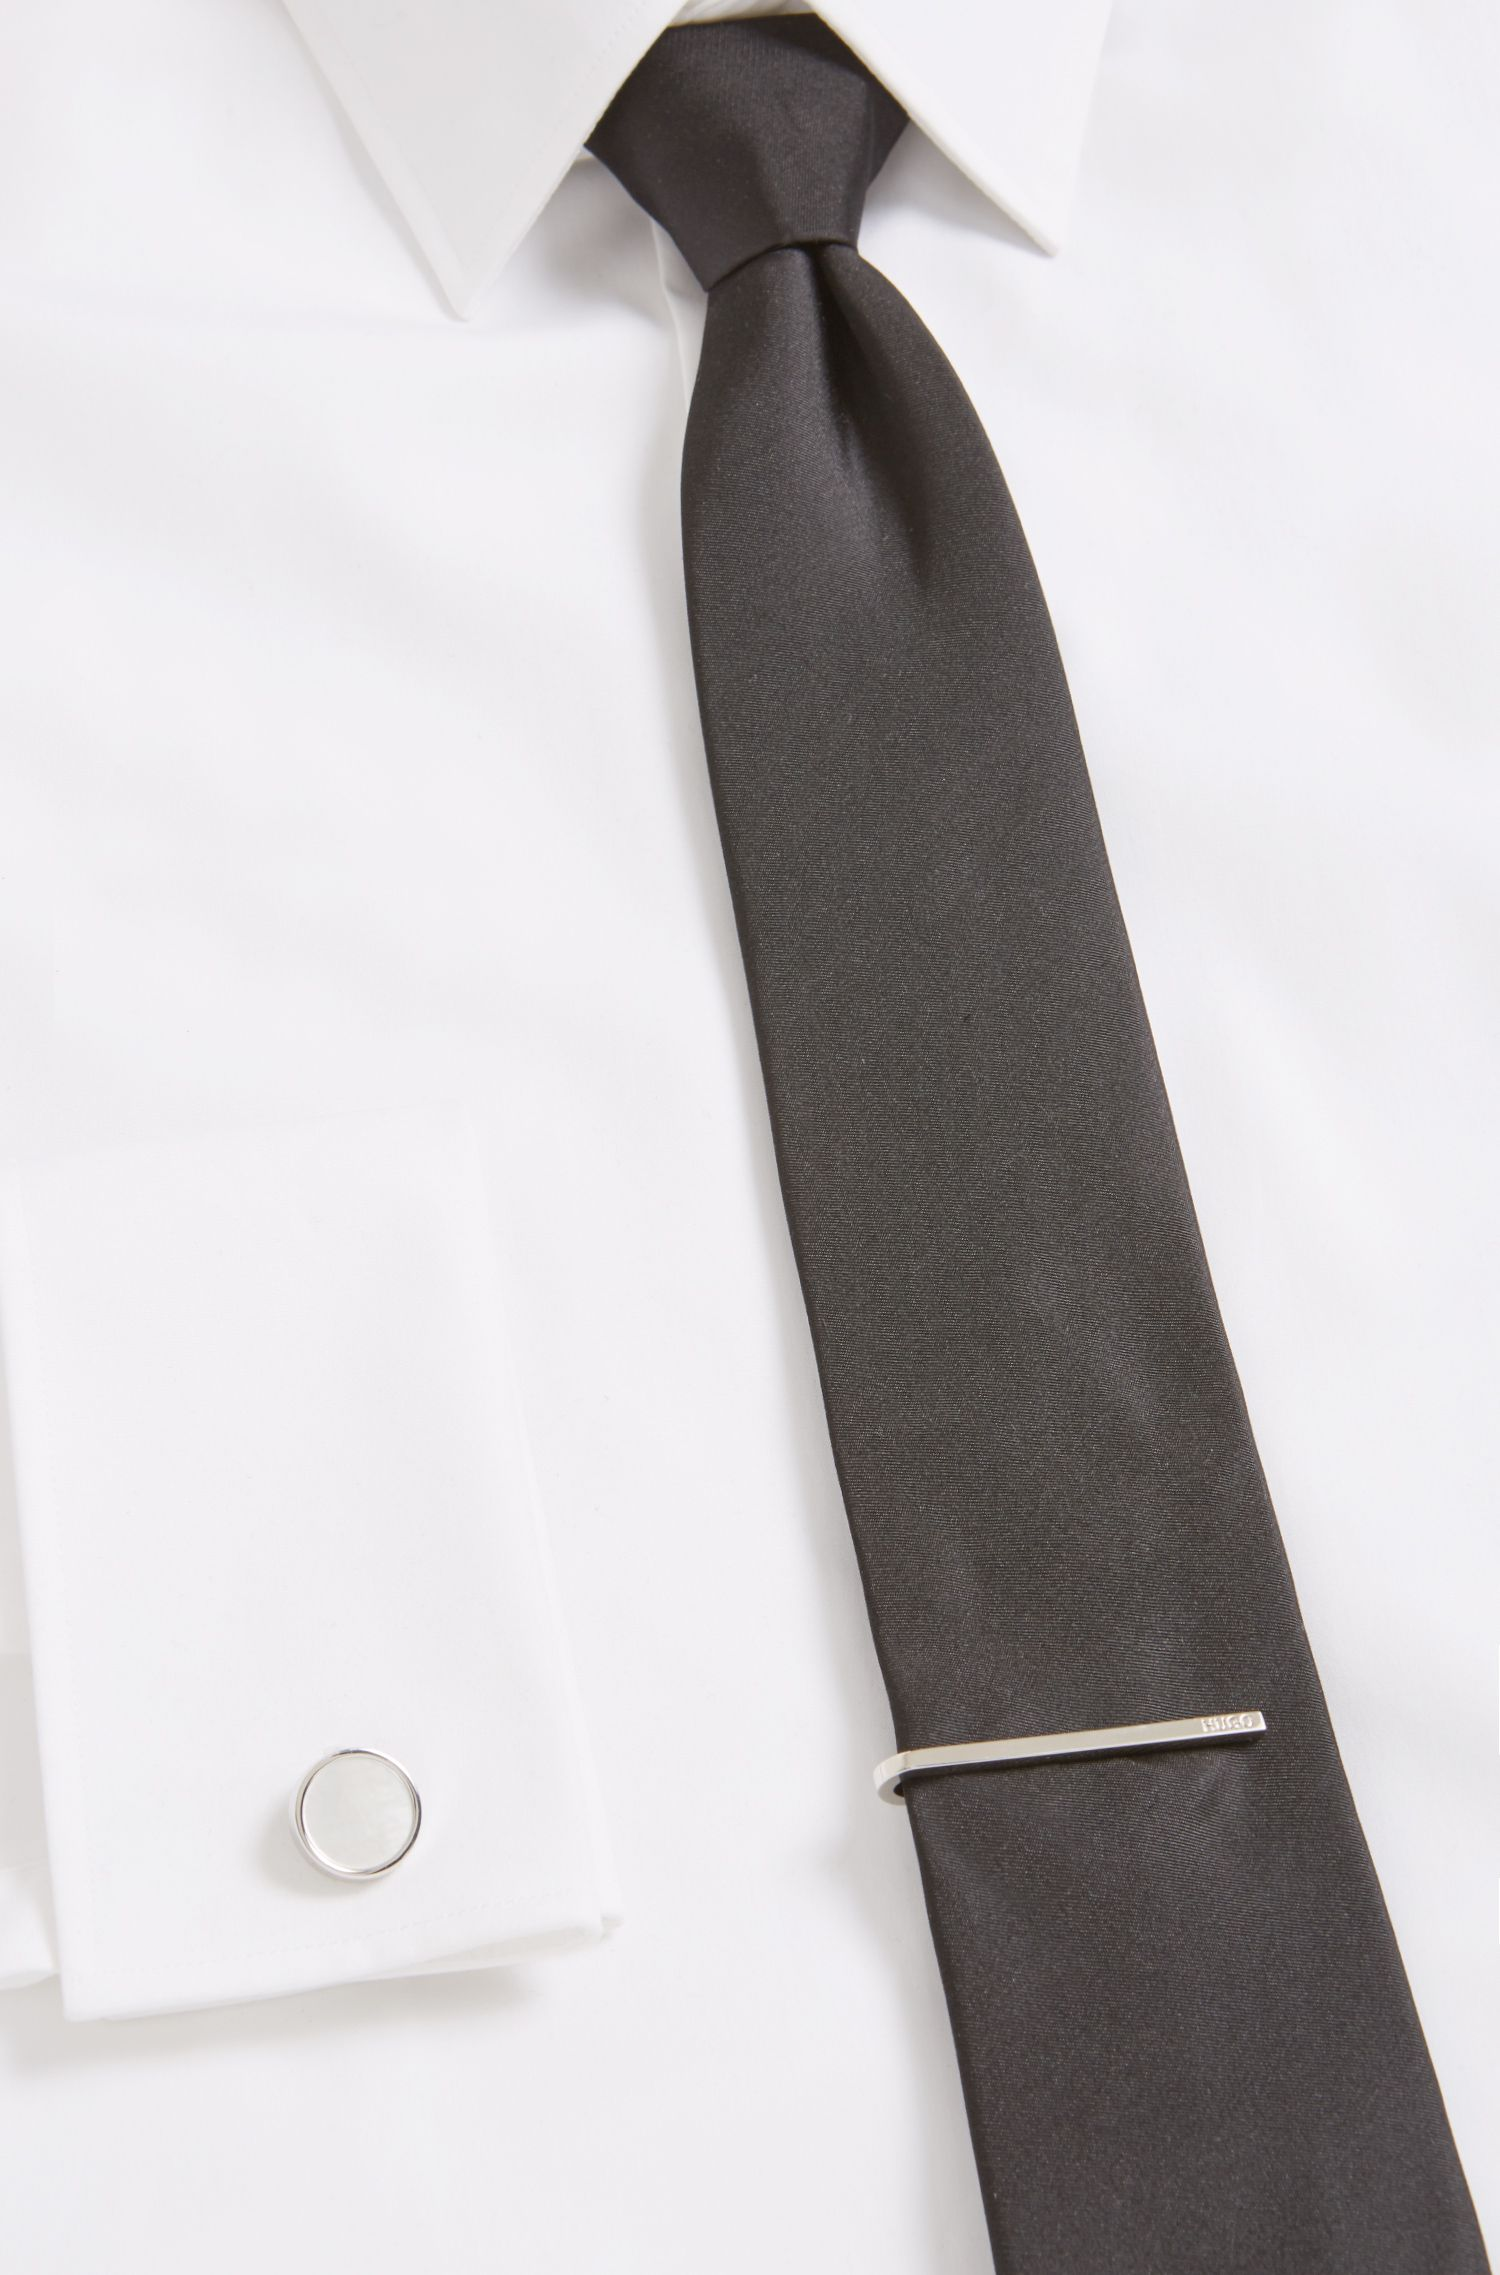 Polished metal tie clip with engraved logo